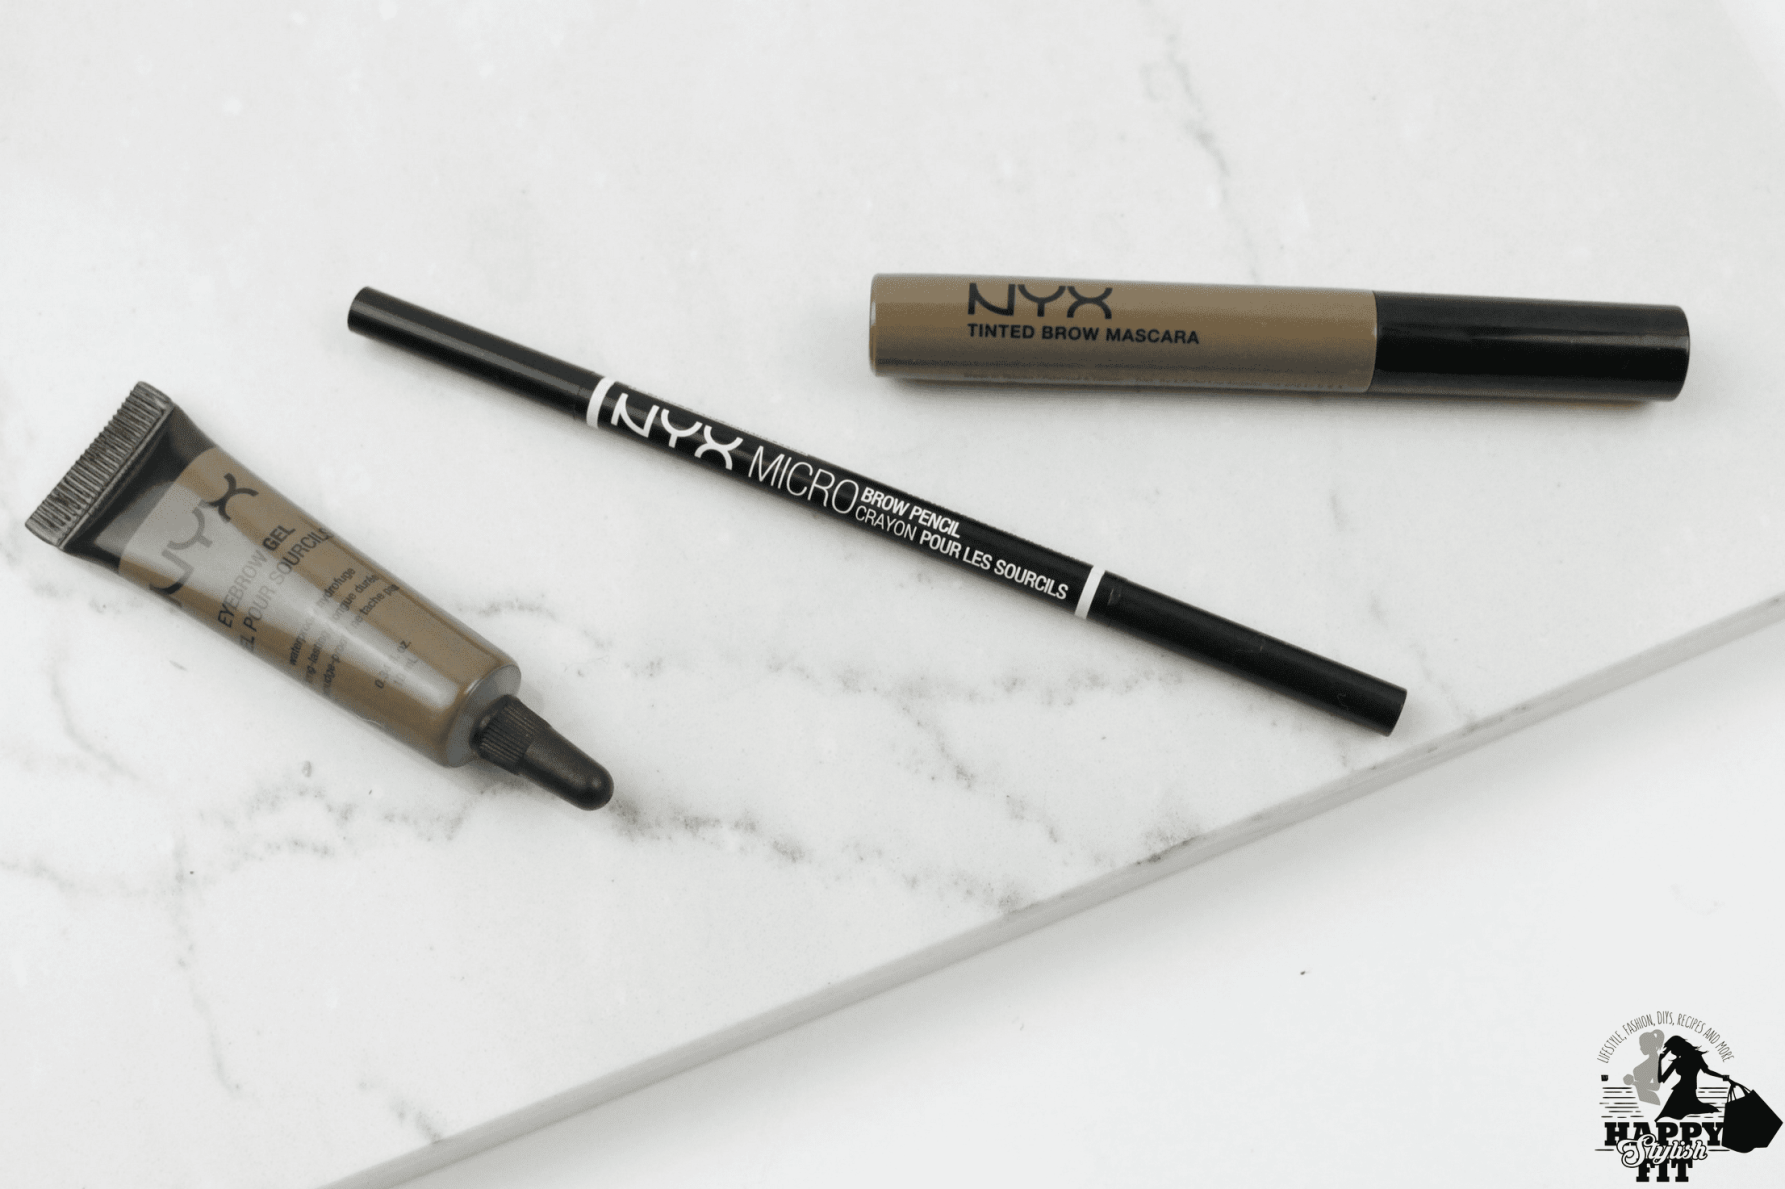 Find out if these NYX products are worth buying from this eyebrow makeup review.